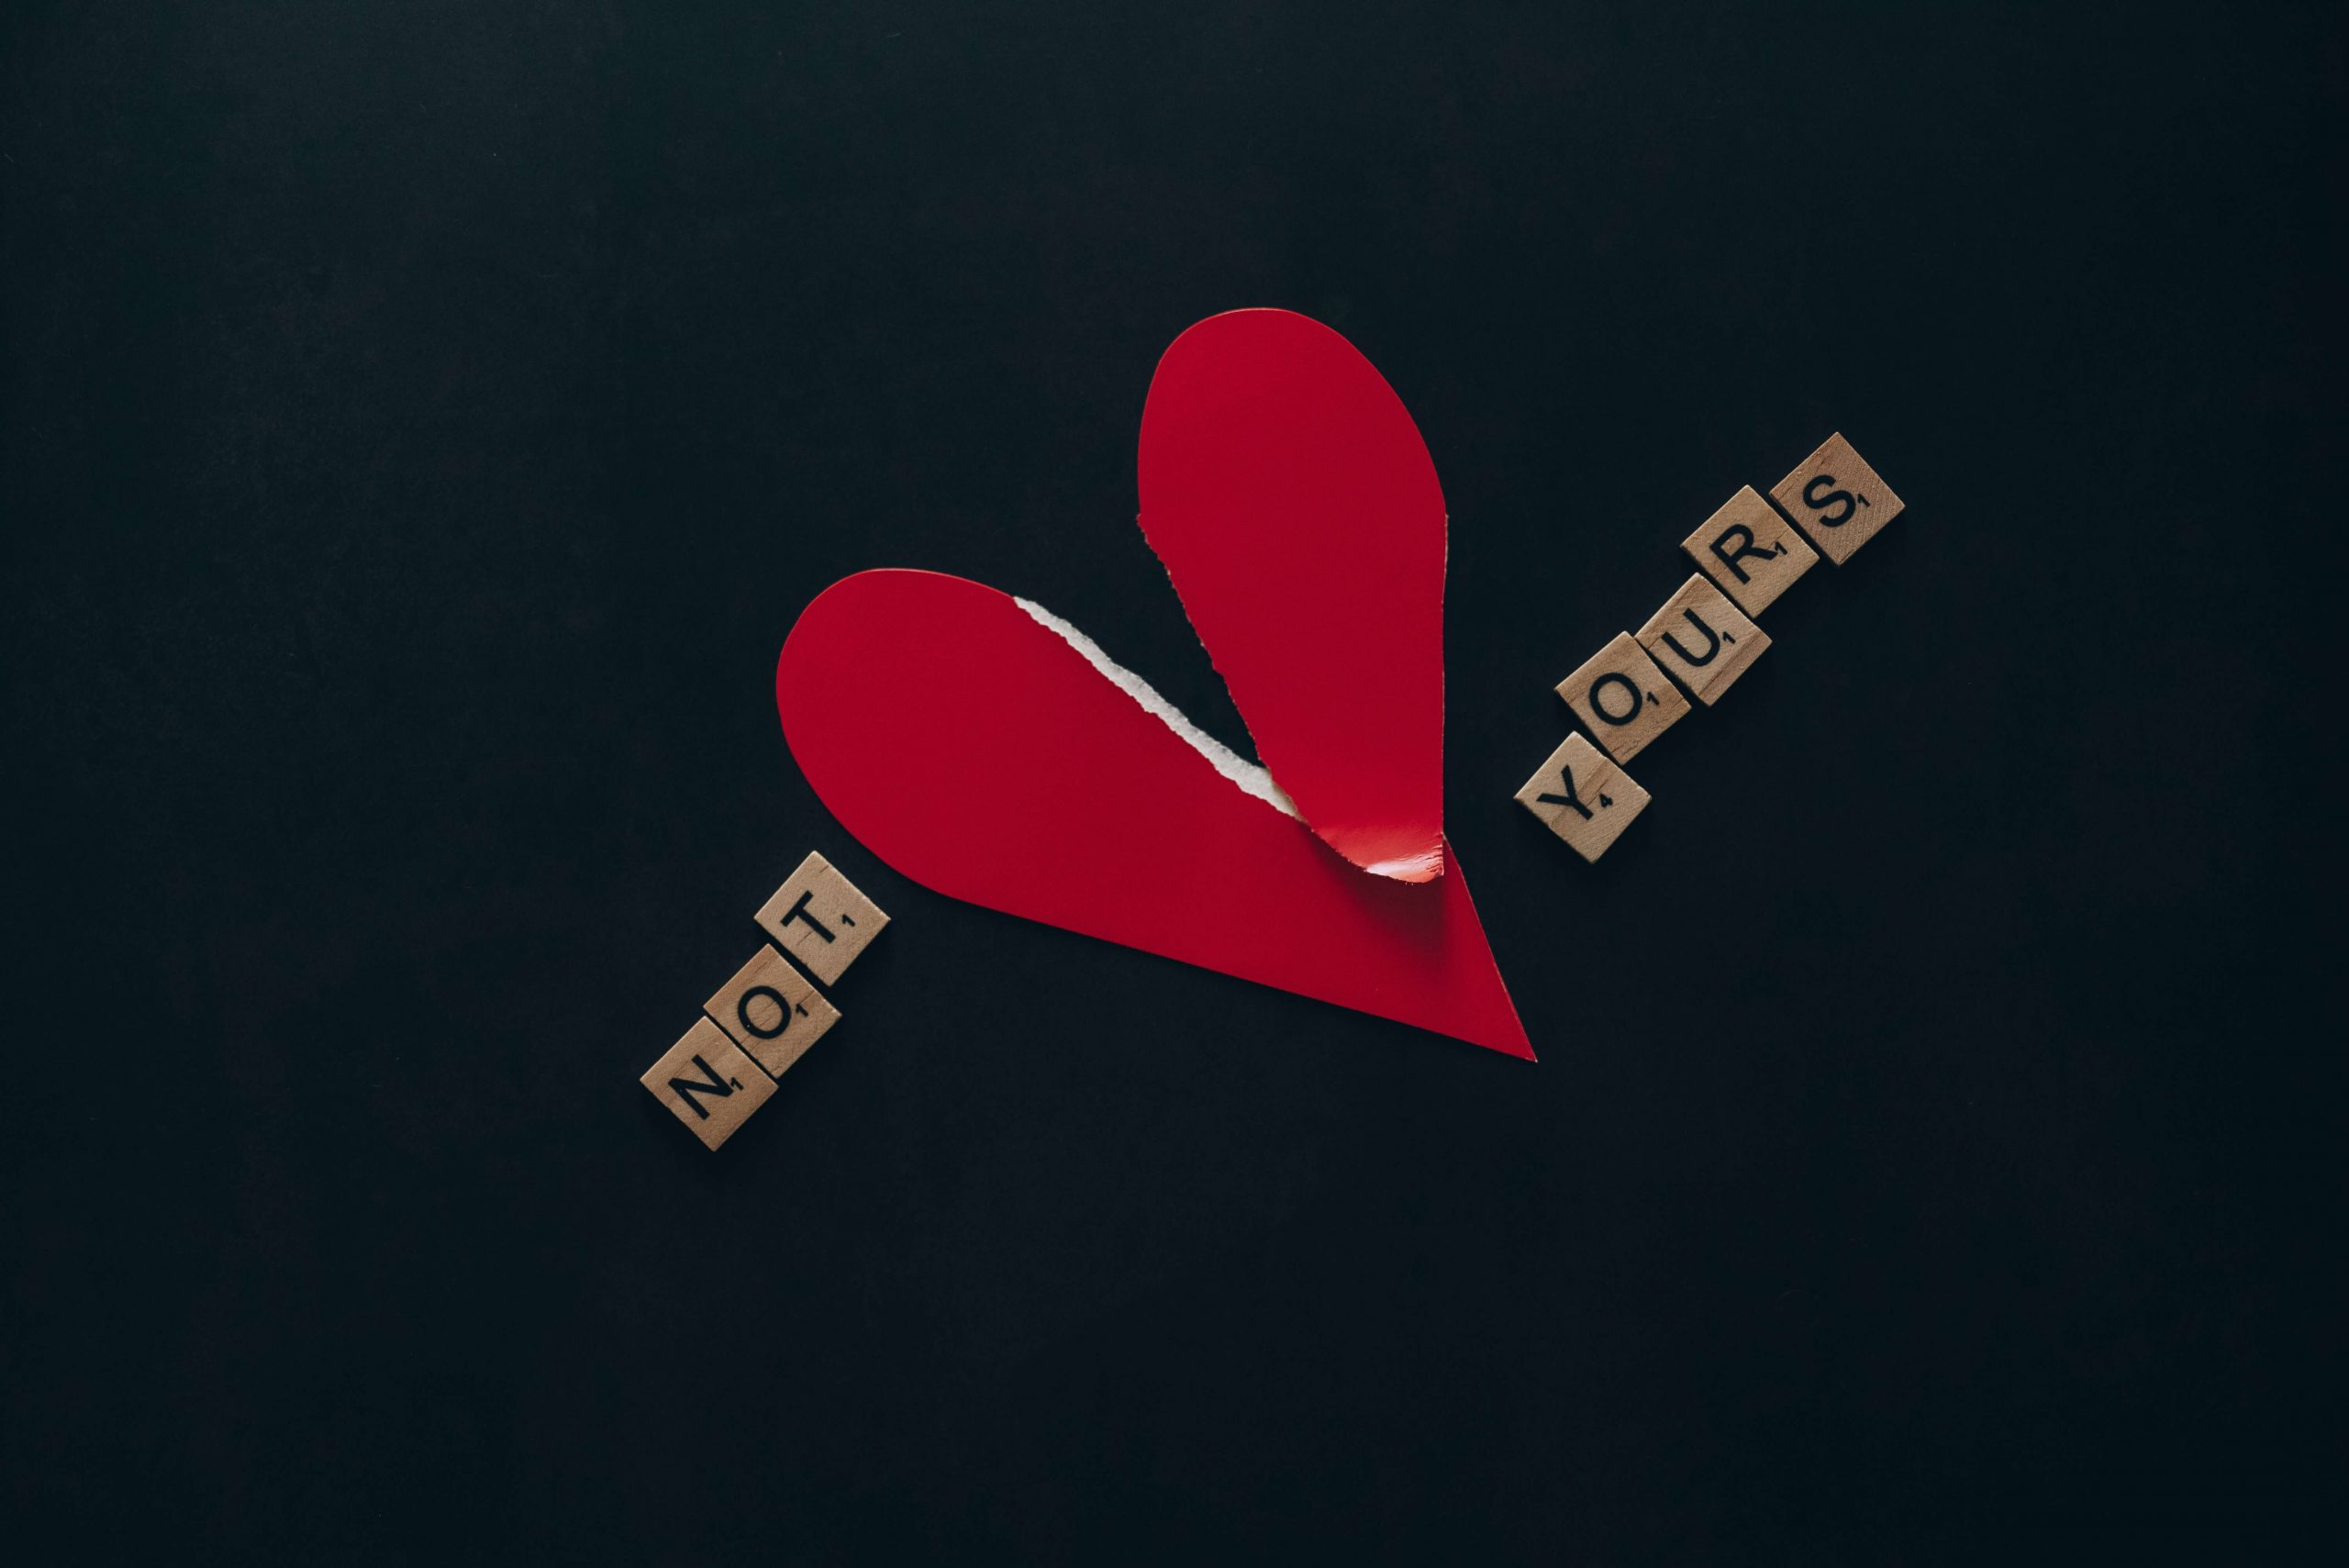 A ripped red paper heart on a dark blue background with the scrabble letters 'Not yours'.